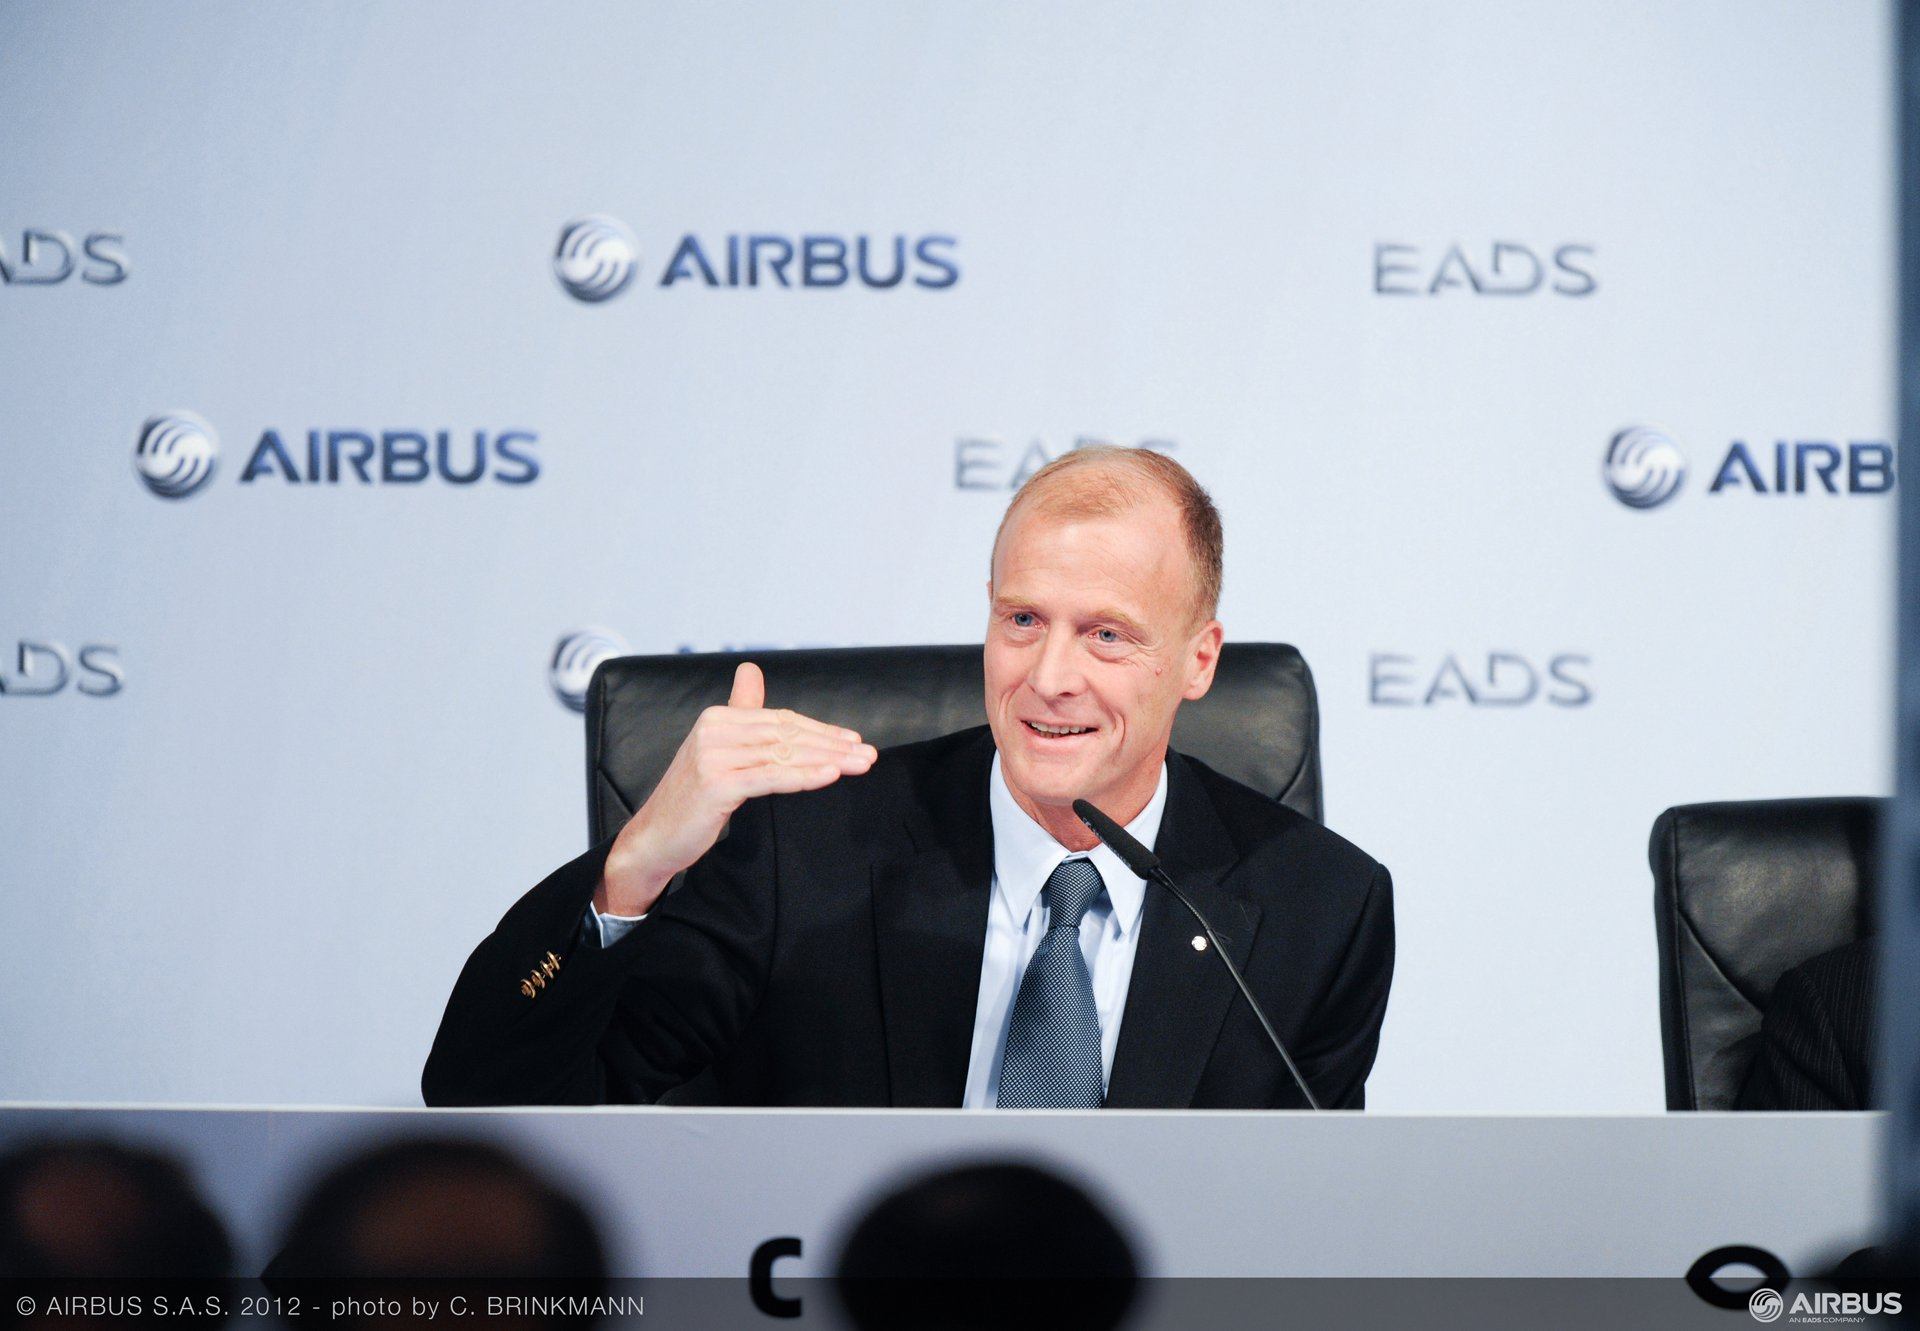 Speaking at the annual press conference in Hamburg, Germany, Airbus President and CEO Tom Enders underscored the company's 534 deliveries achieved during 2011 – its  highest annual amount ever (17 January 2012)